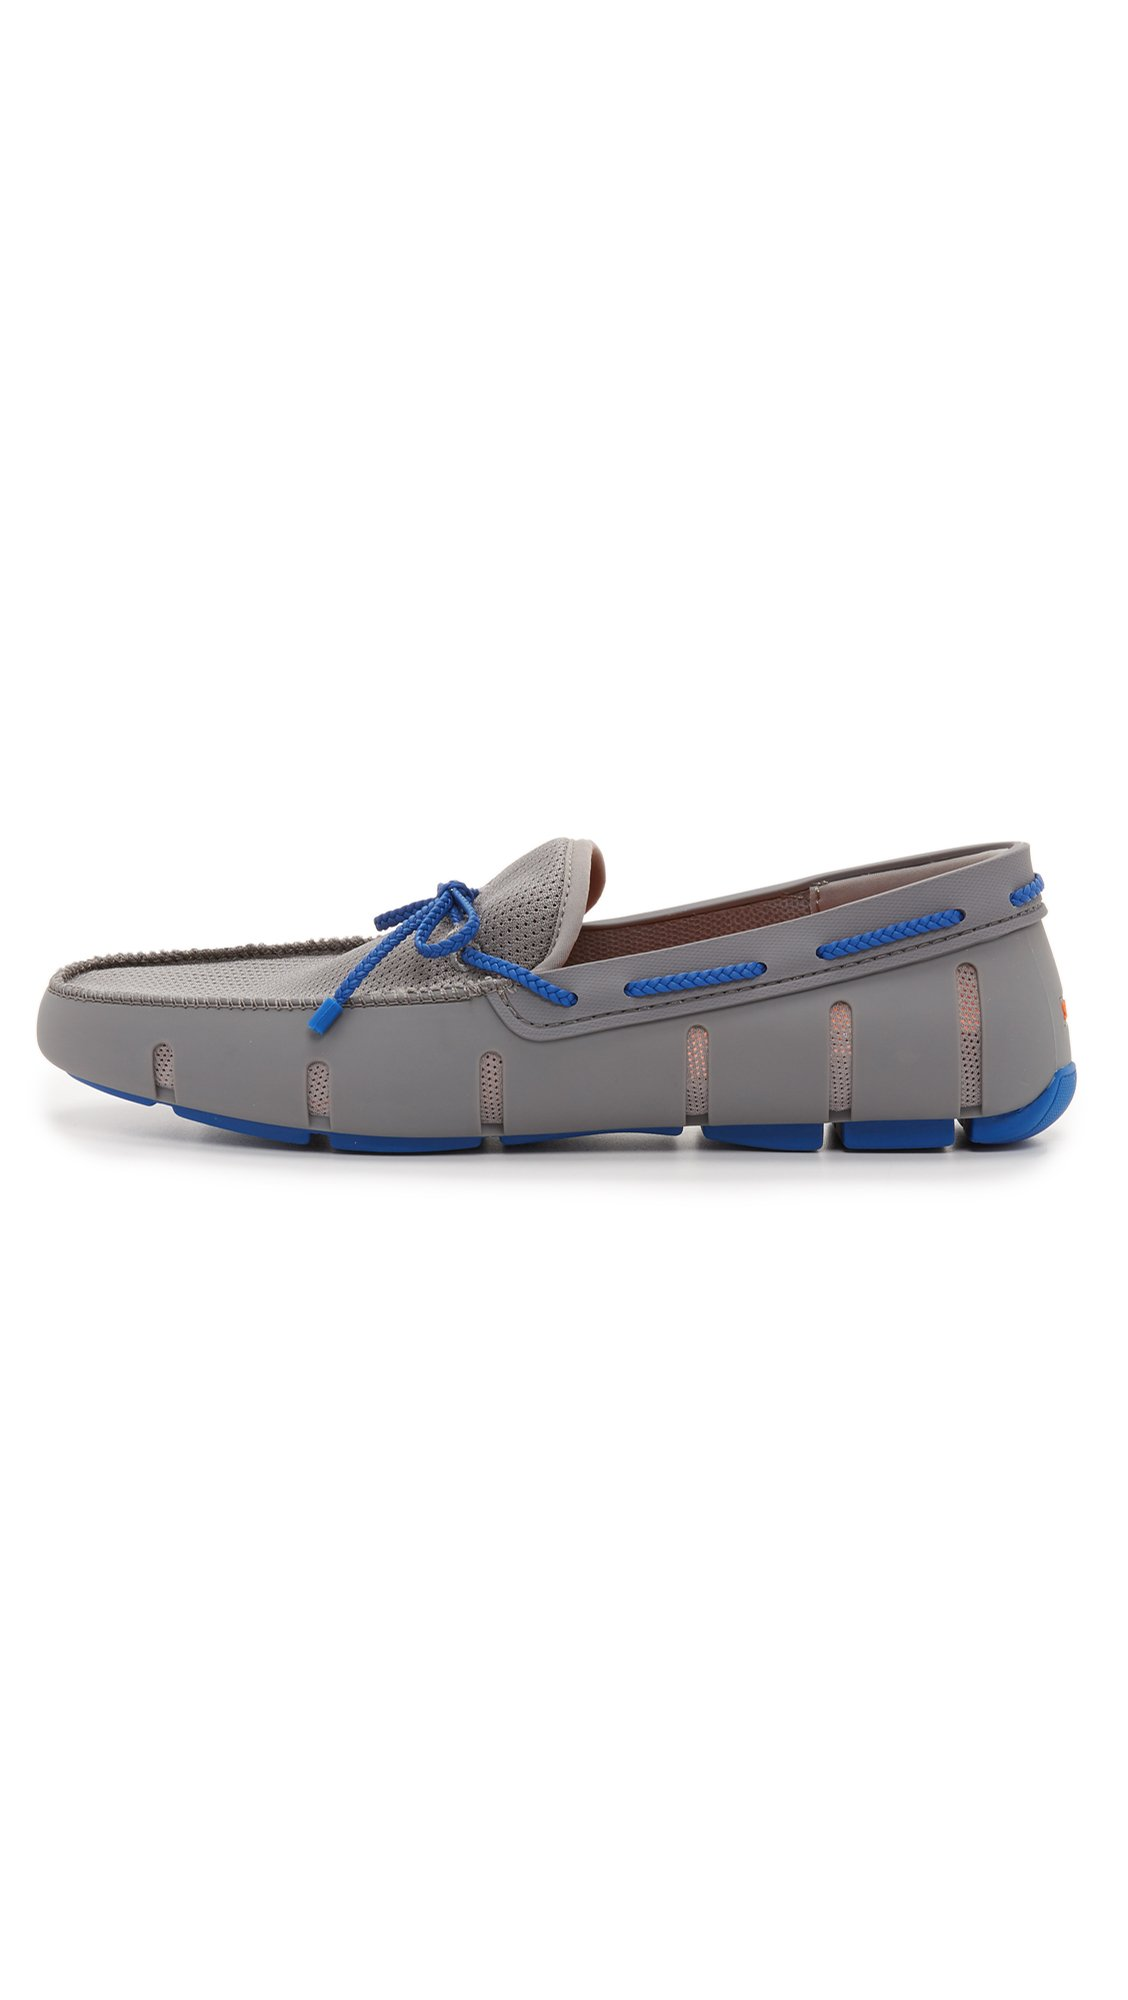 SWIMS Men's Braided Lace Loafers, Grey/Blue, 7 D(M) US by SWIMS (Image #2)